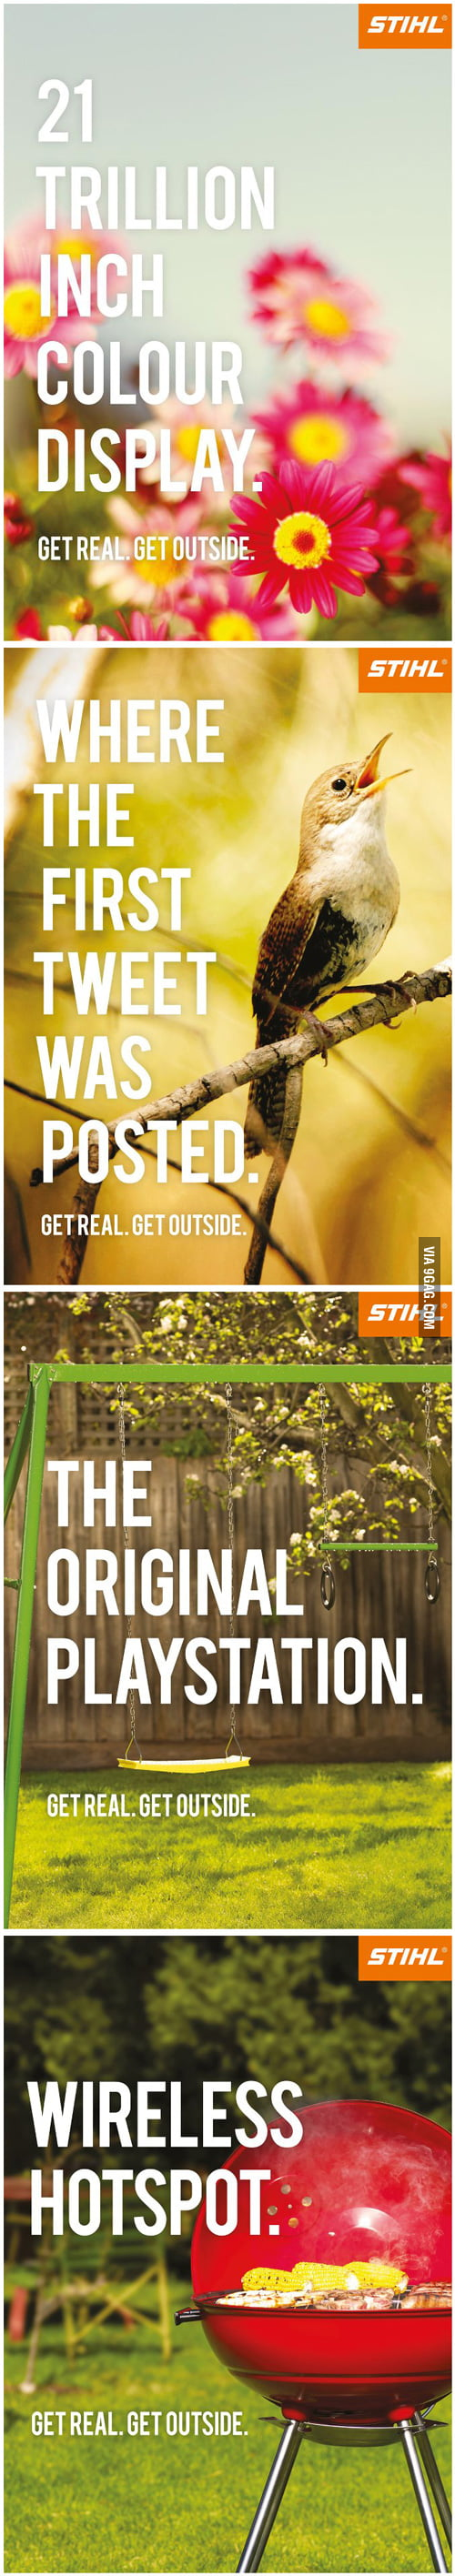 STIHL - get outdoors campaign